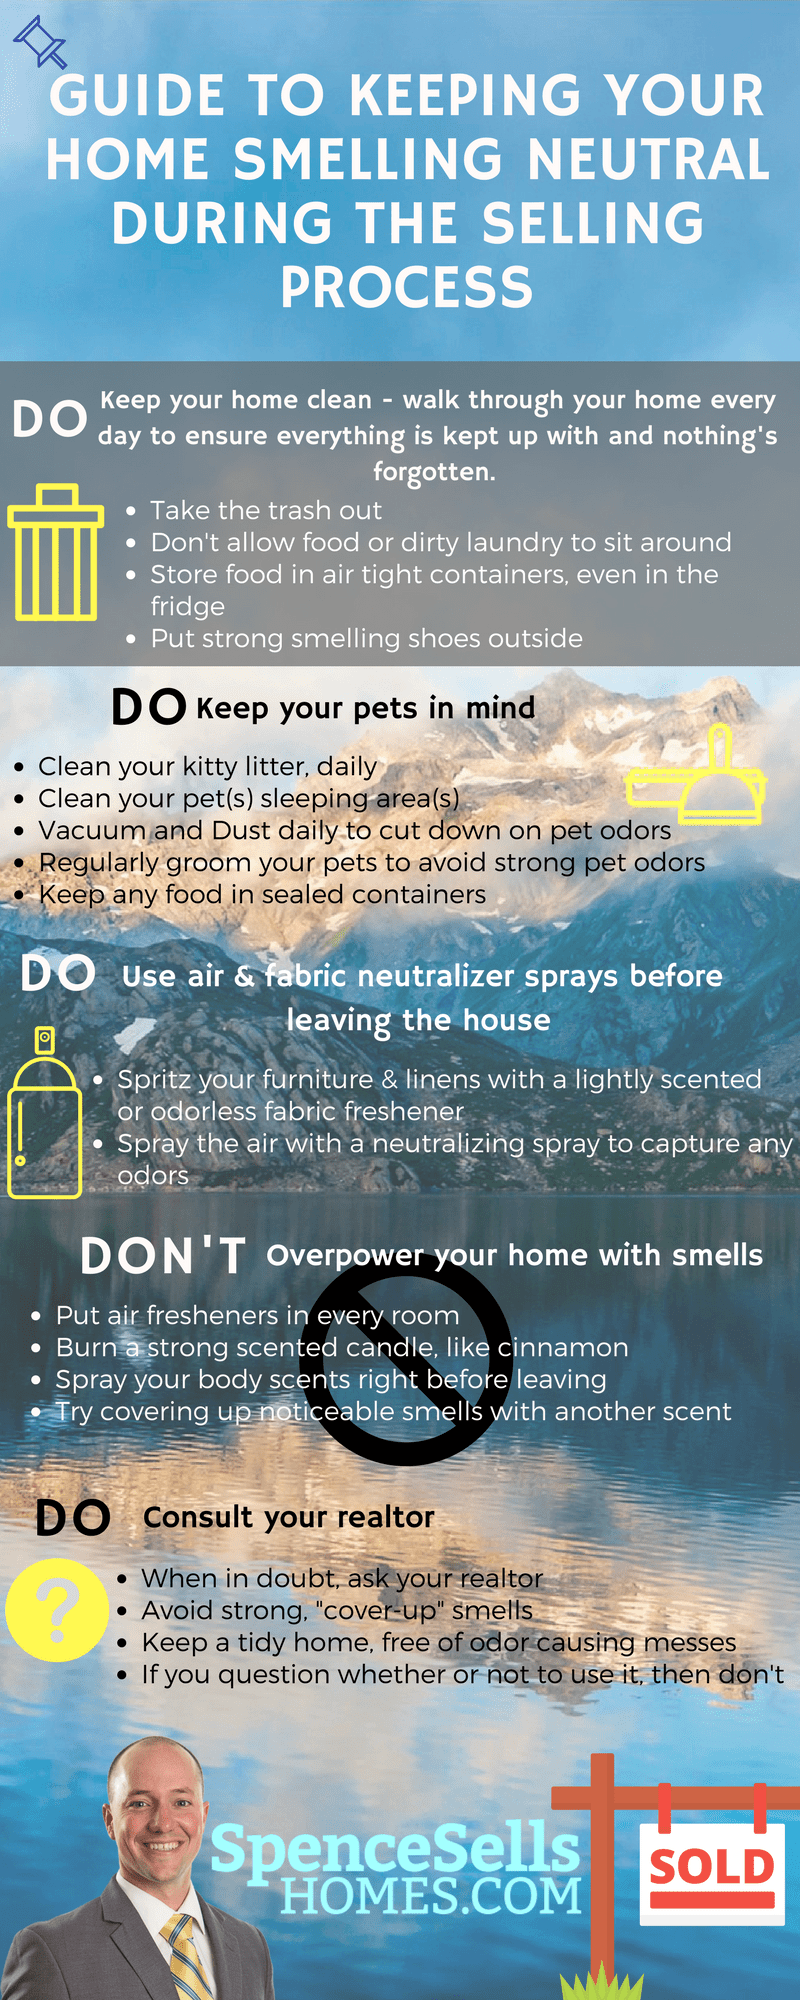 Guide to Keep your Home Smelling Neutral During the Selling Process